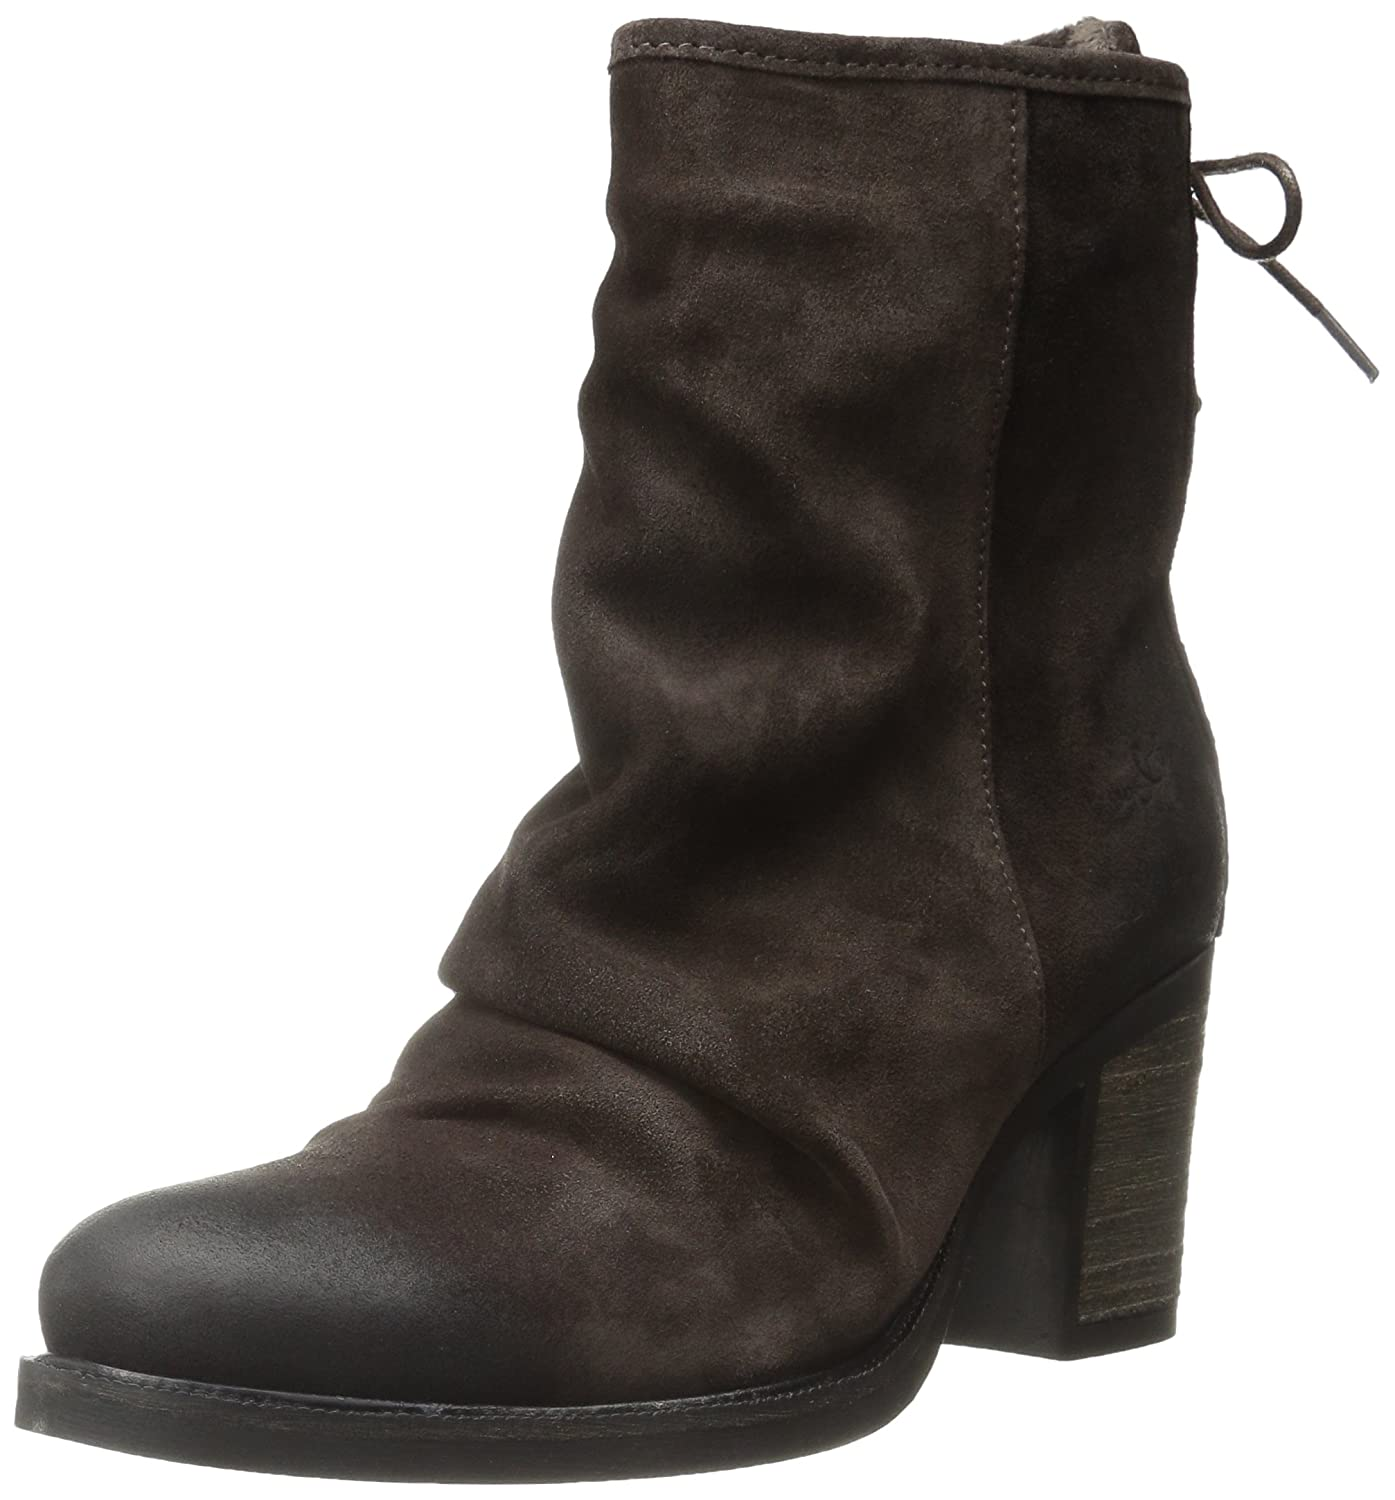 Bos. & Co. Women's Barlow Boot B00VO1YZHS 38 EU/7-7.5 M US|Dark Brown